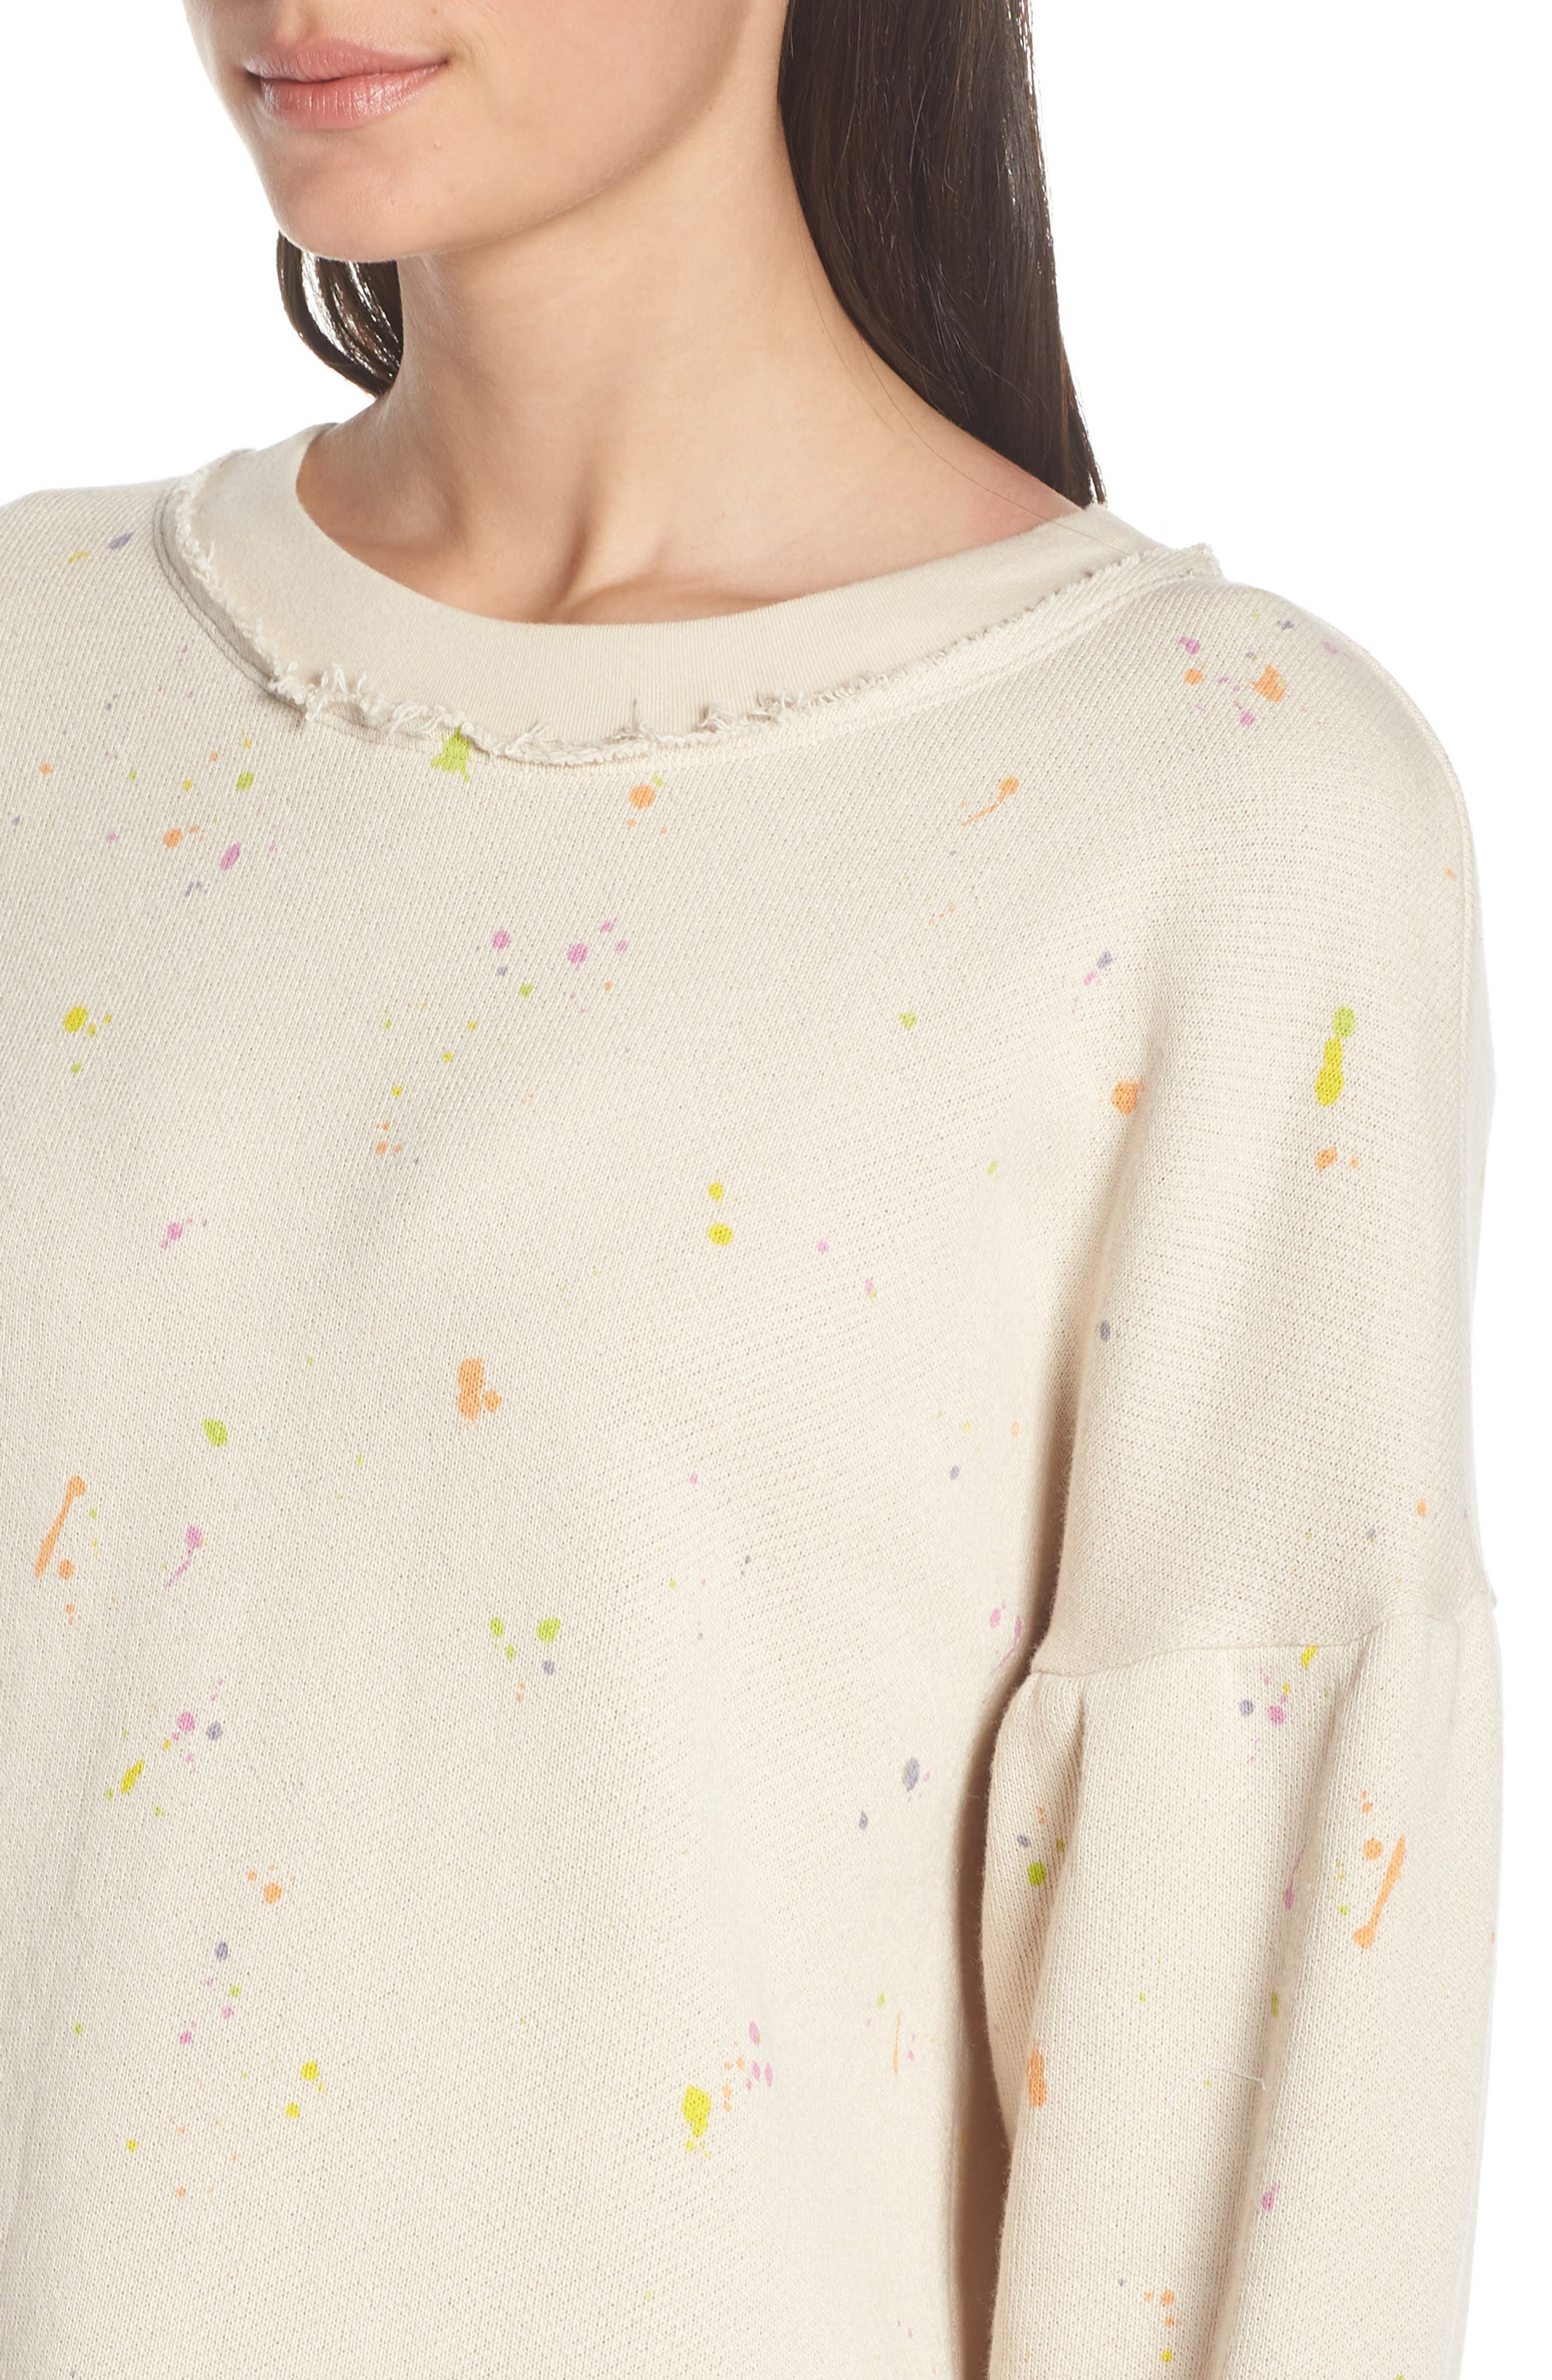 FREE PEOPLE MOVEMENT, Make It Count Printed Sweatshirt, Alternate thumbnail 5, color, IVORY